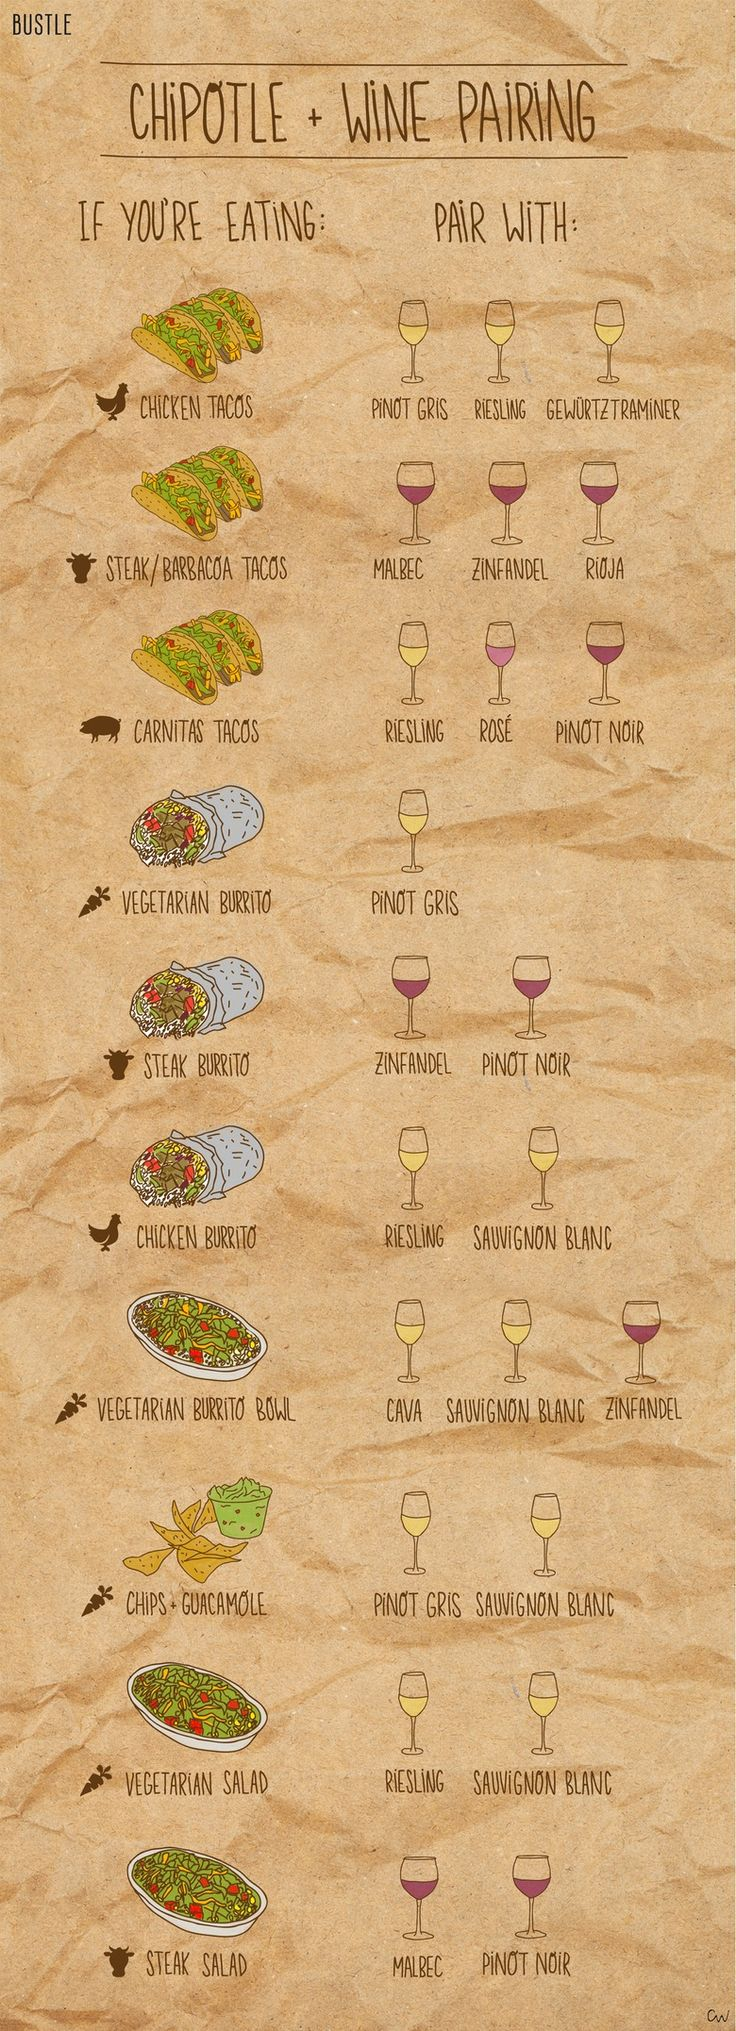 Chipotle and wine pairing